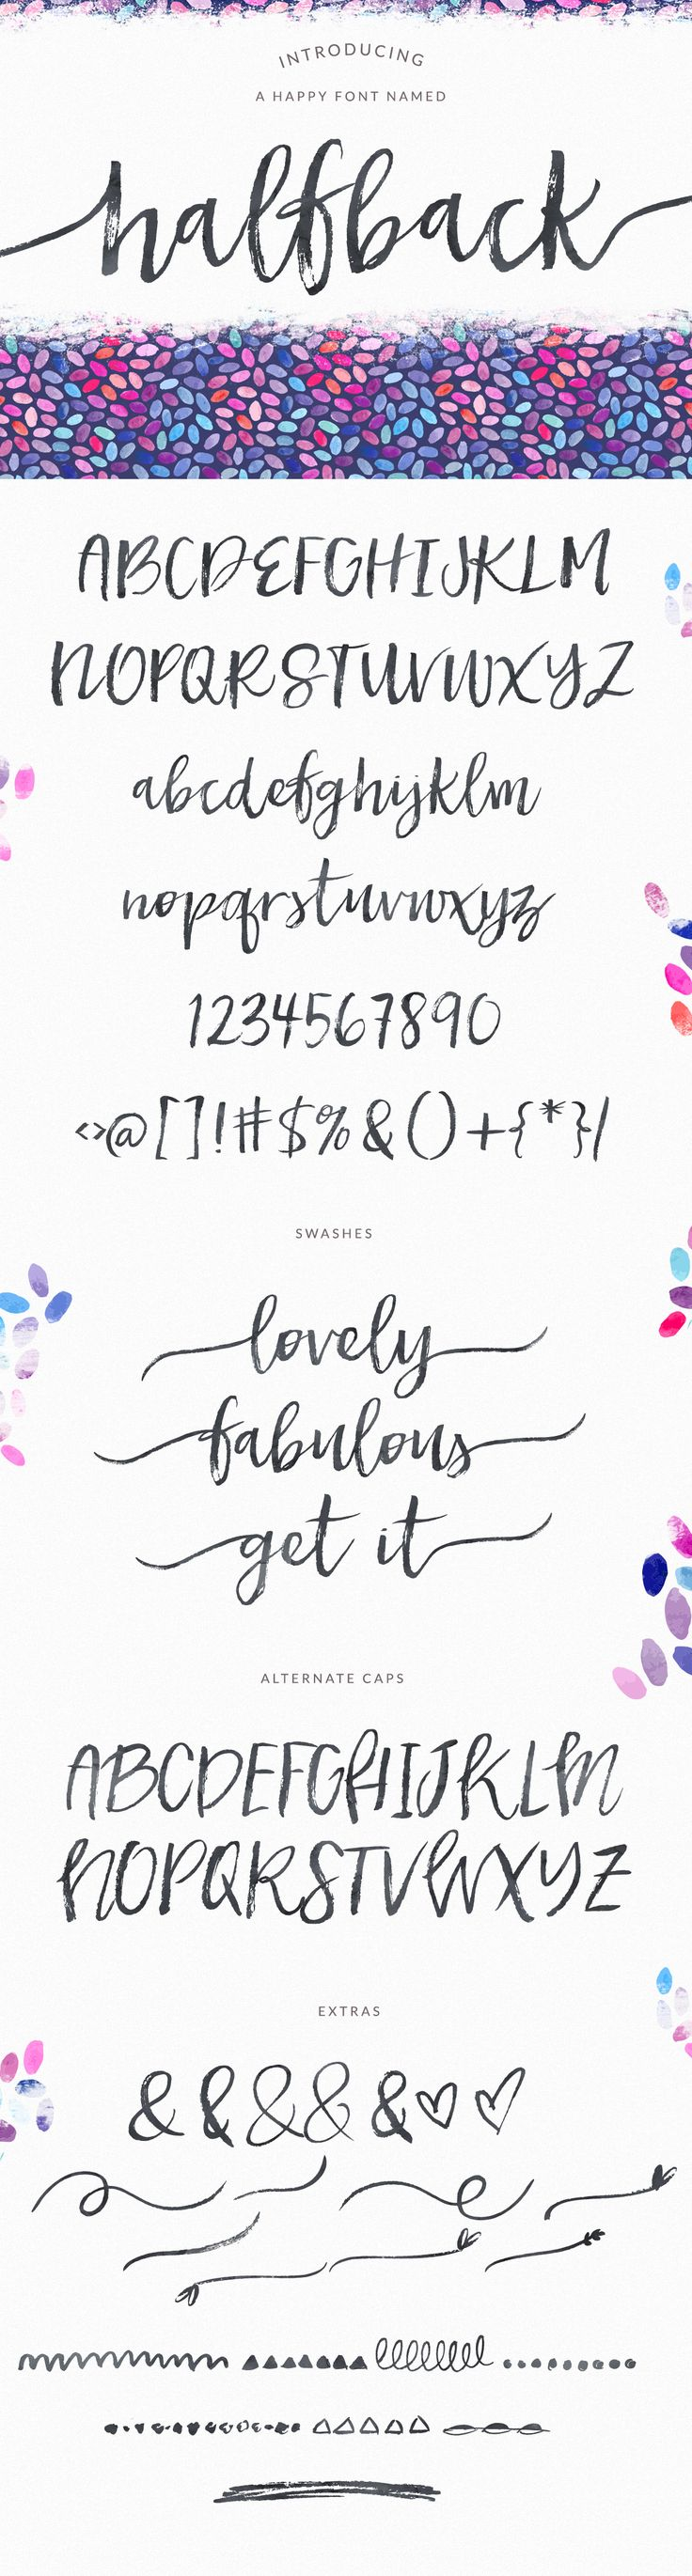 Halfback - A Dry Brushed Script Font by Angie Makes on Creative Market